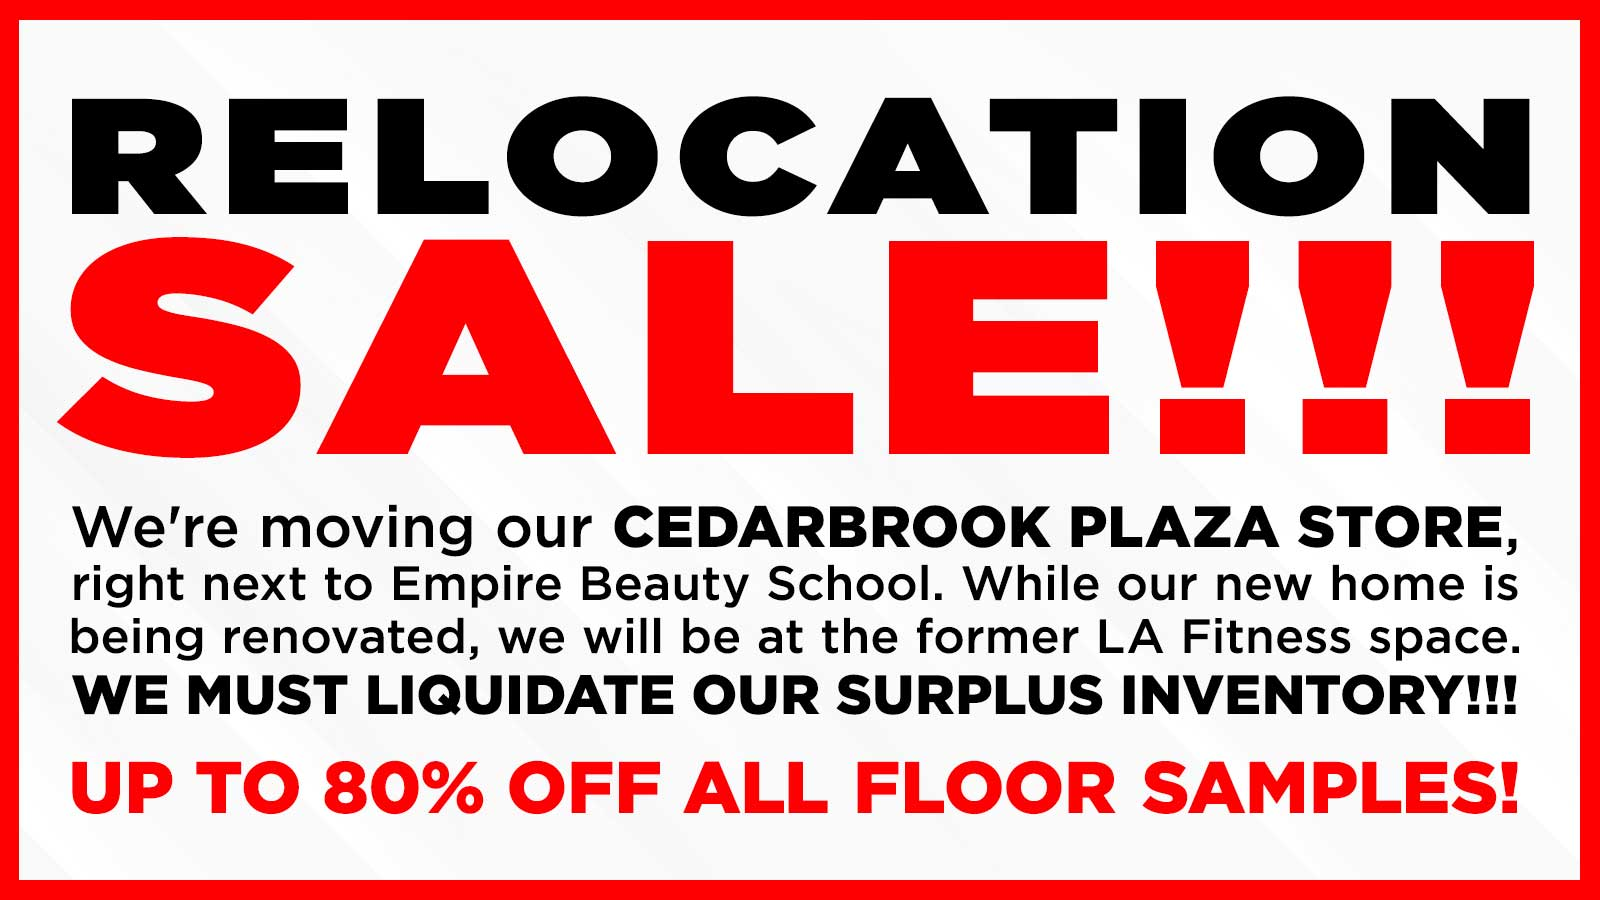 Relocation Sale